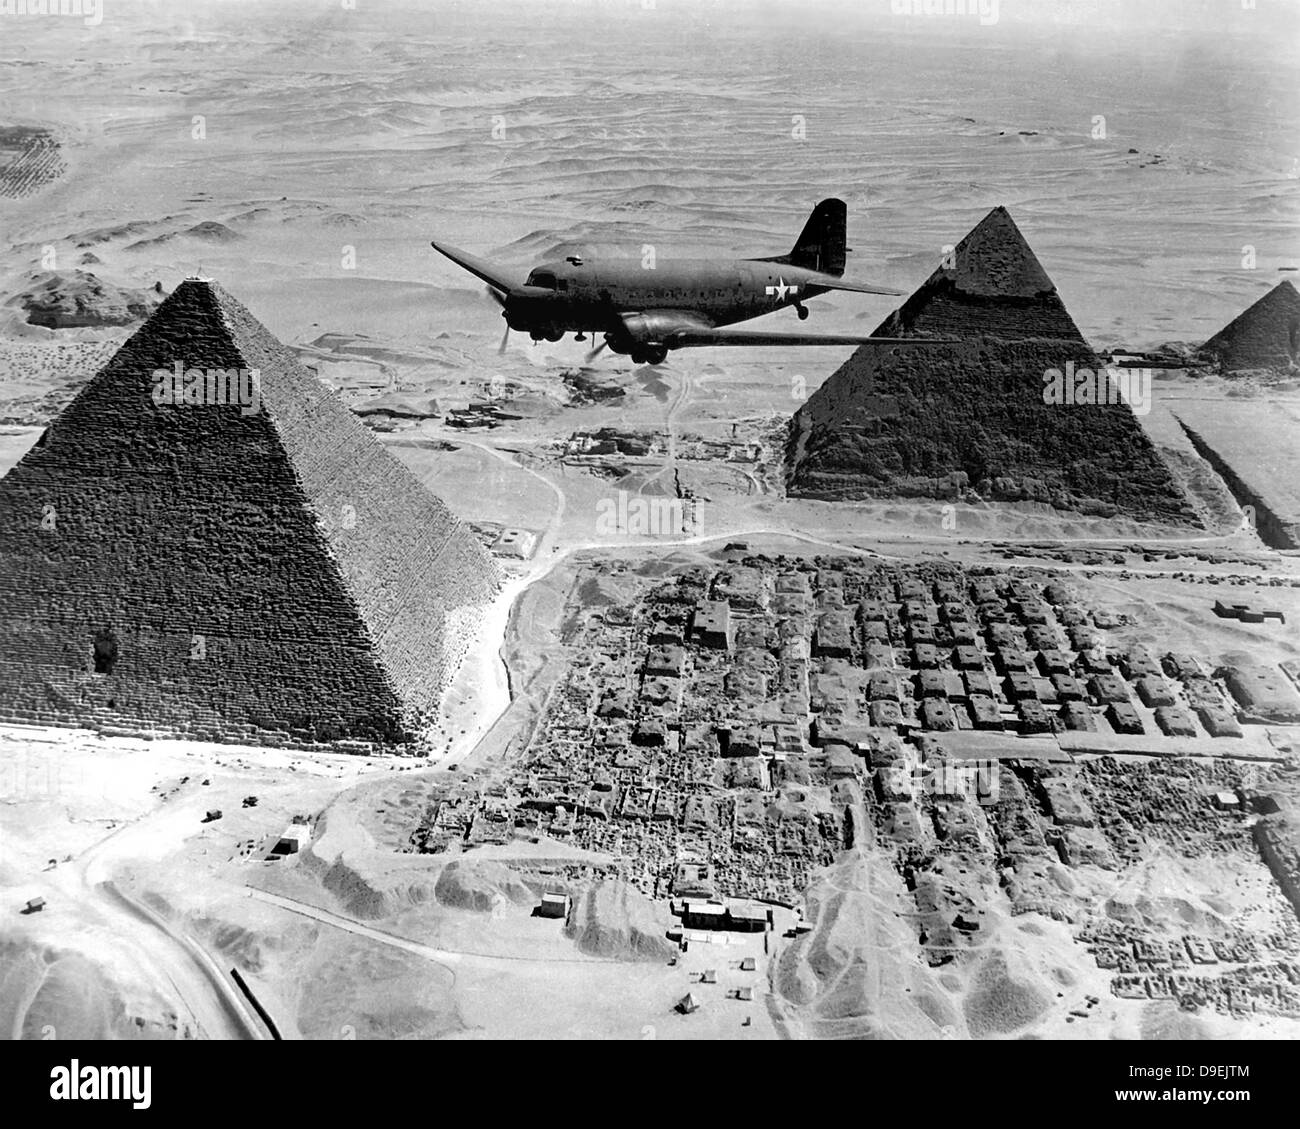 An Air Transport Command plane flies over the pyramids in Egypt. Stock Photo